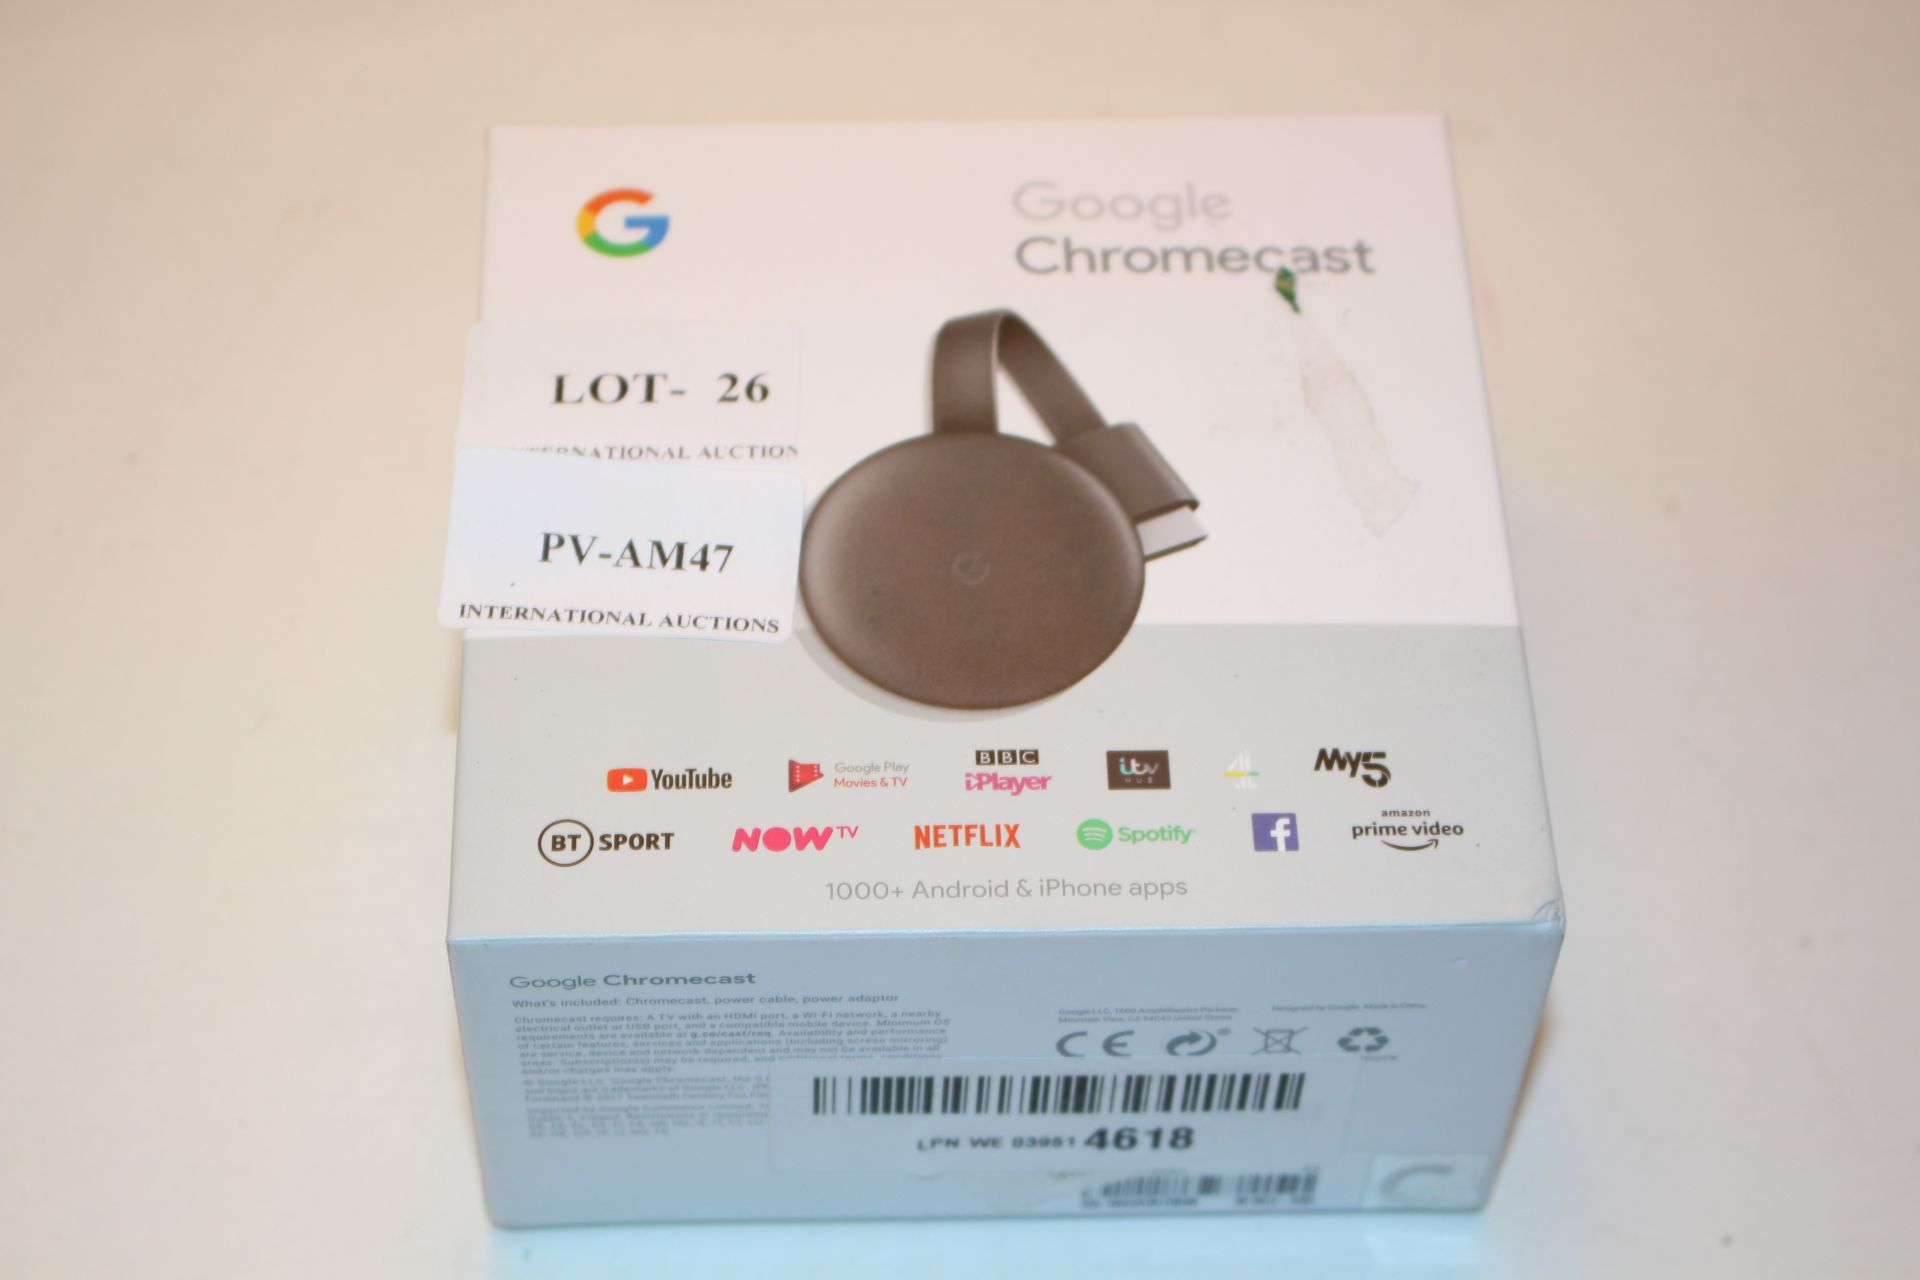 BOXED GOOGLE CHROMECAST RRP £30.00Condition ReportAppraisal Available on Request- All Items are